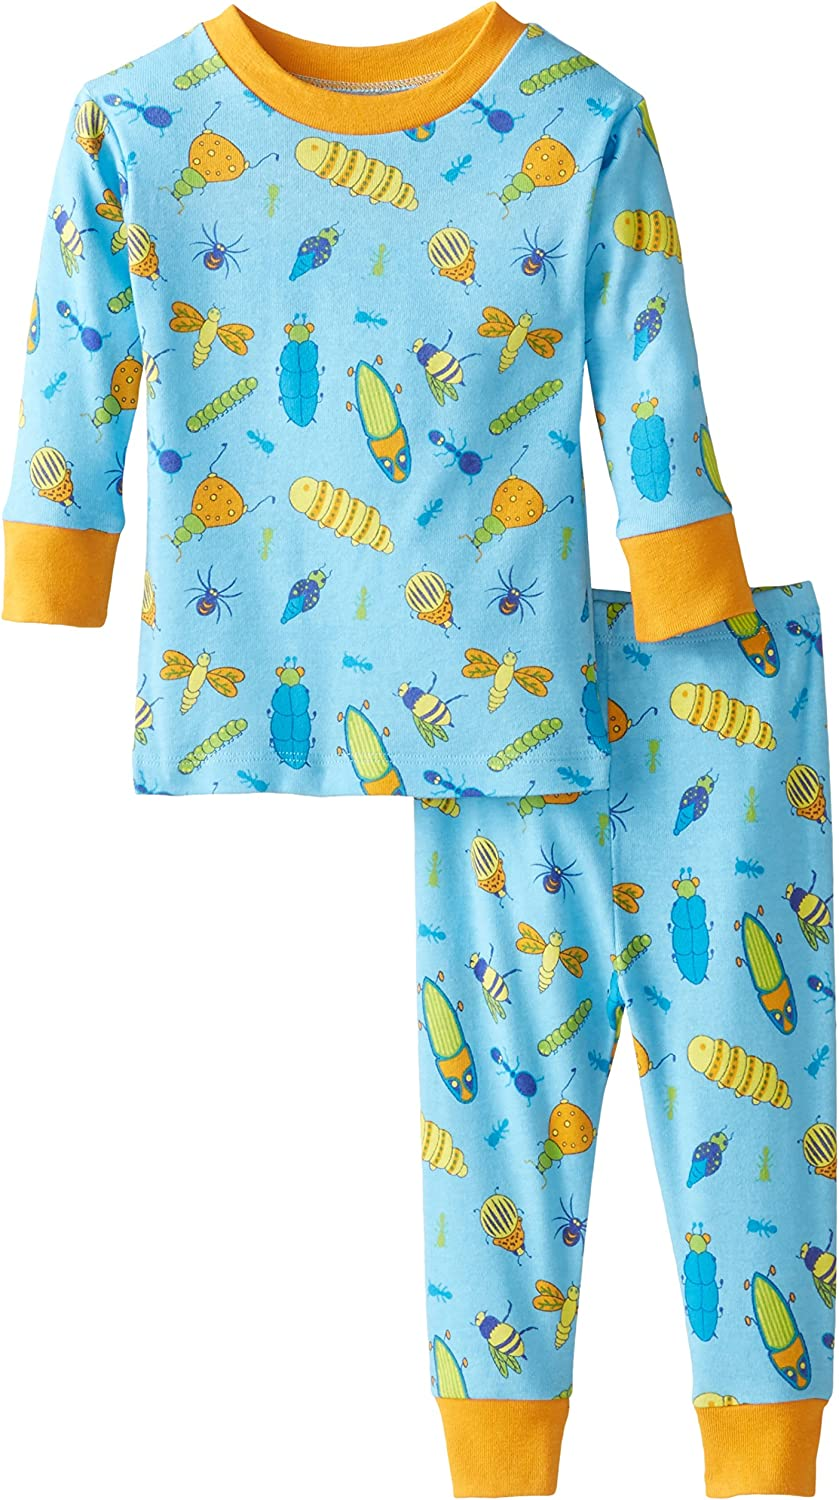 New Jammies Baby Boys Organic Cotton Pajama Set Bugs Life